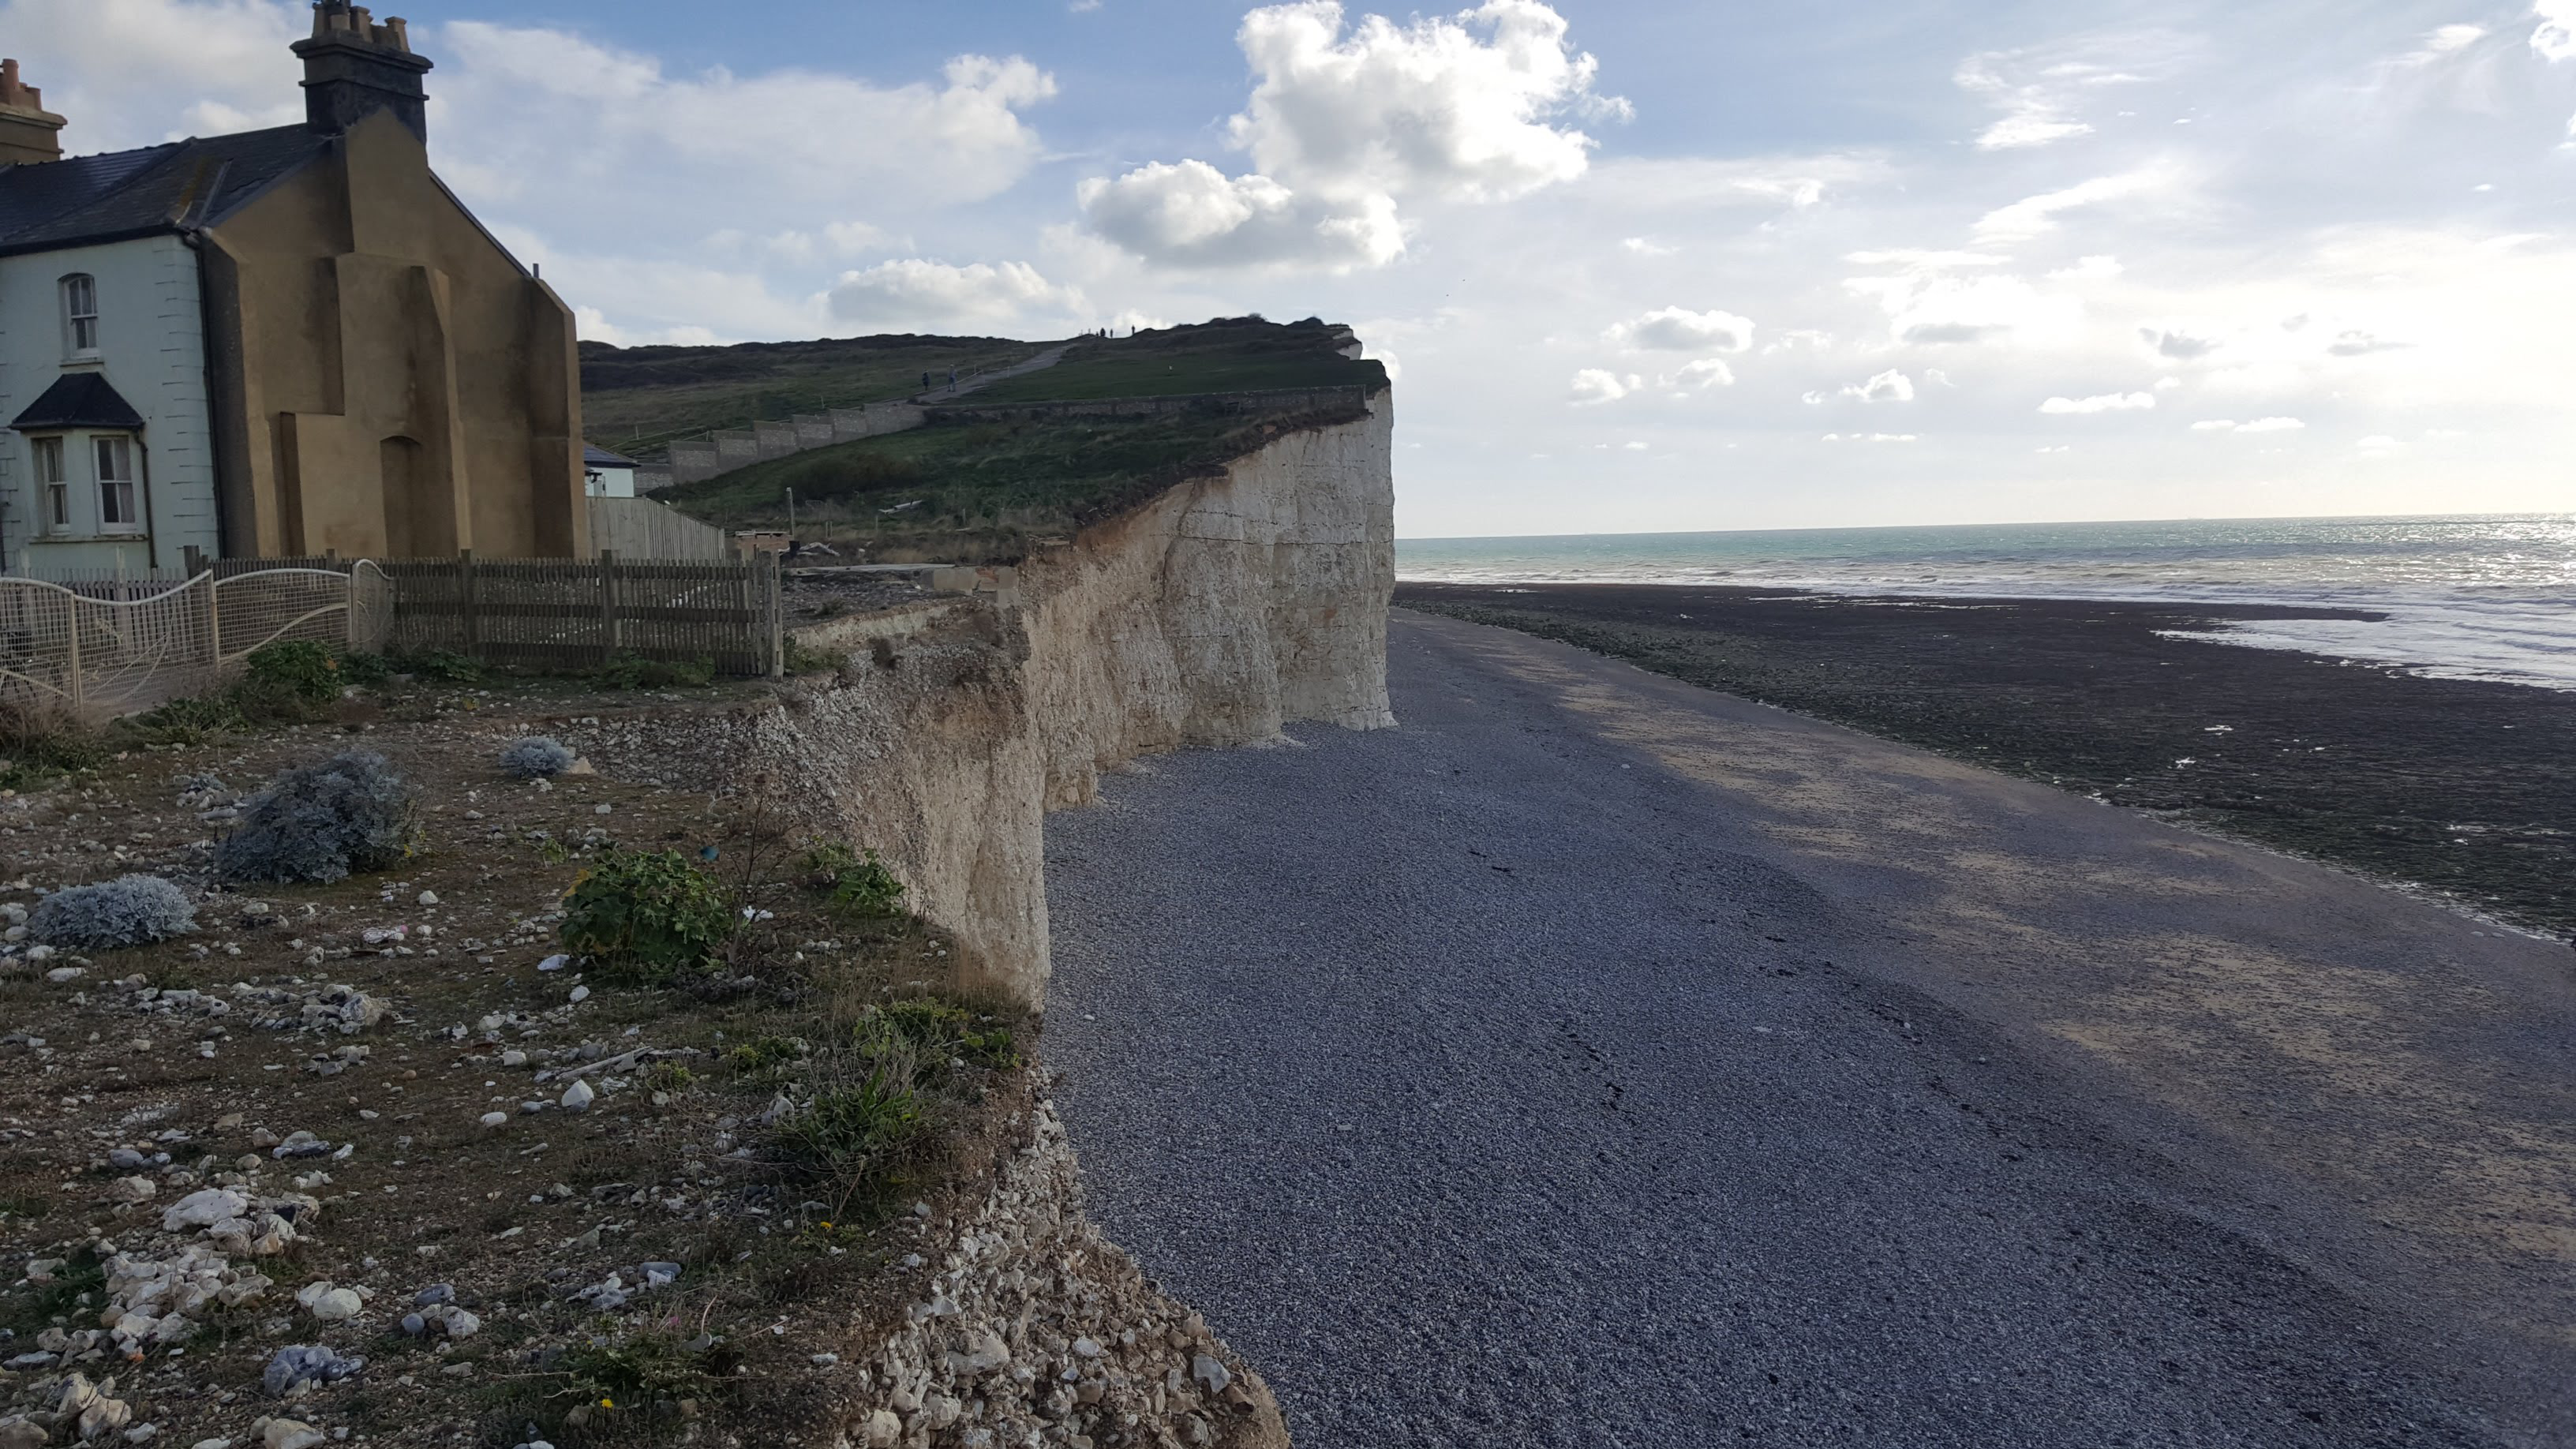 Houses at Birling Gap